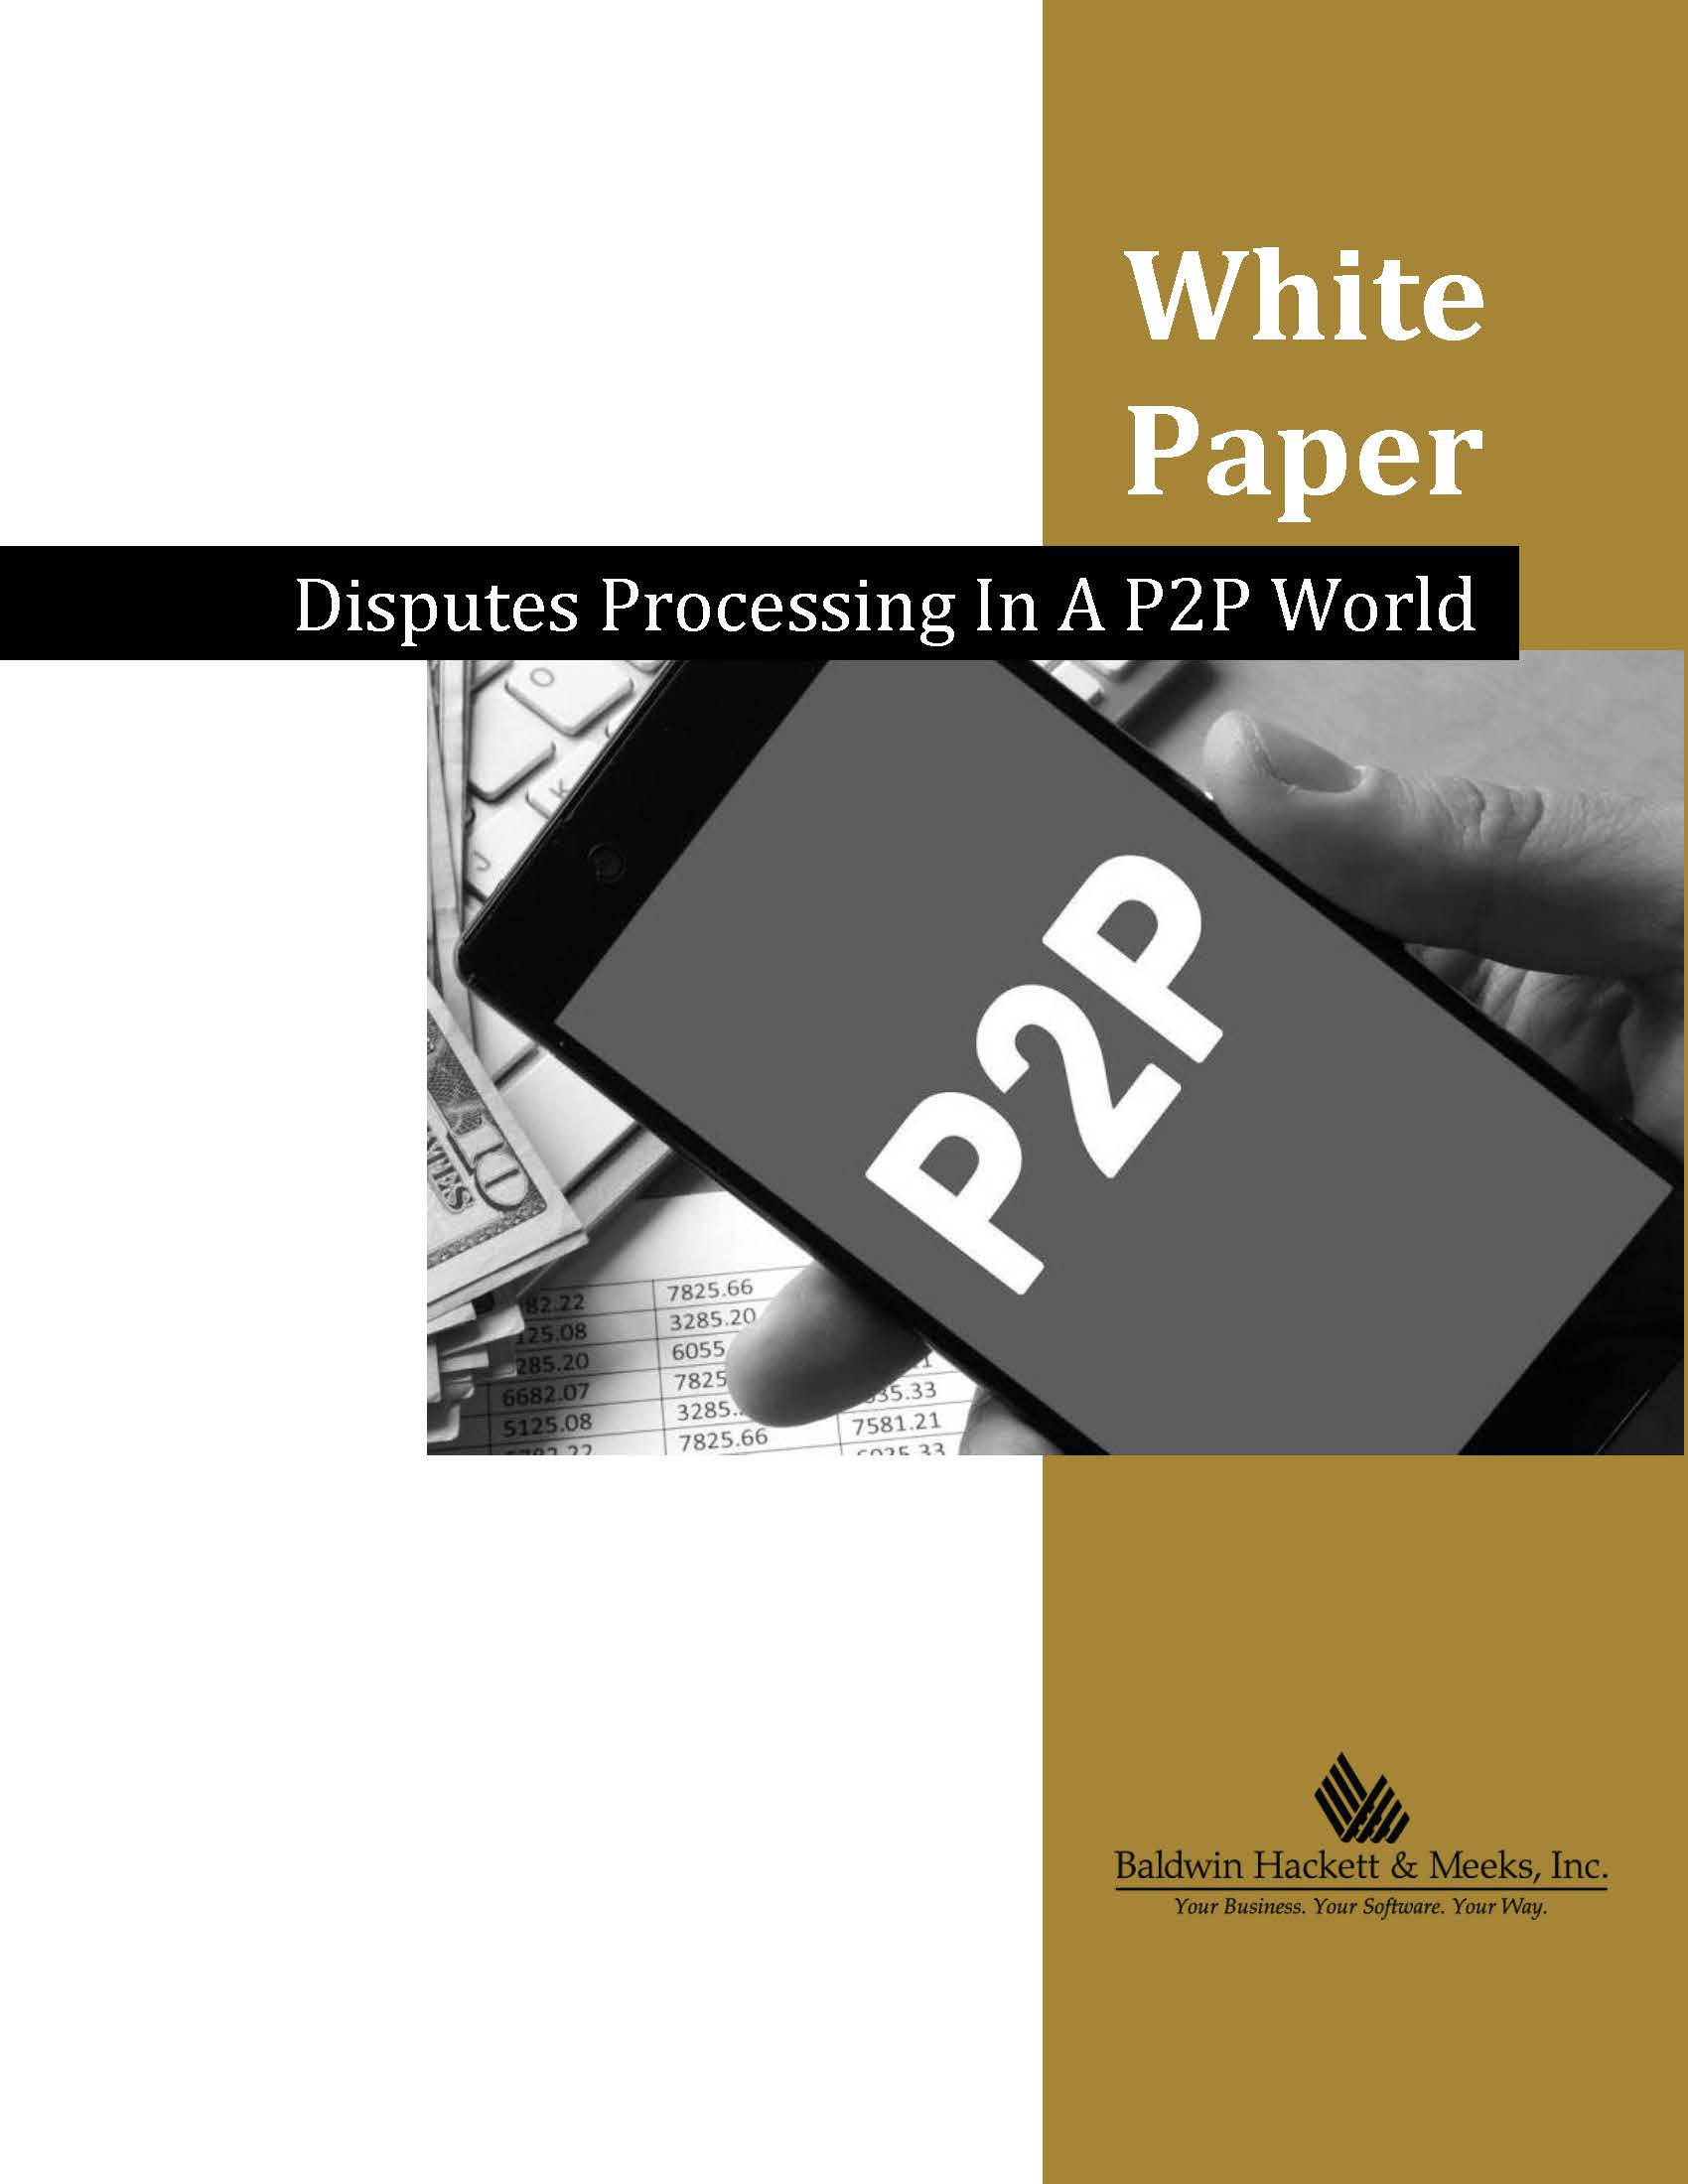 NEW WHITE PAPER: DISPUTES PROCESSING IN A P2P WORLD